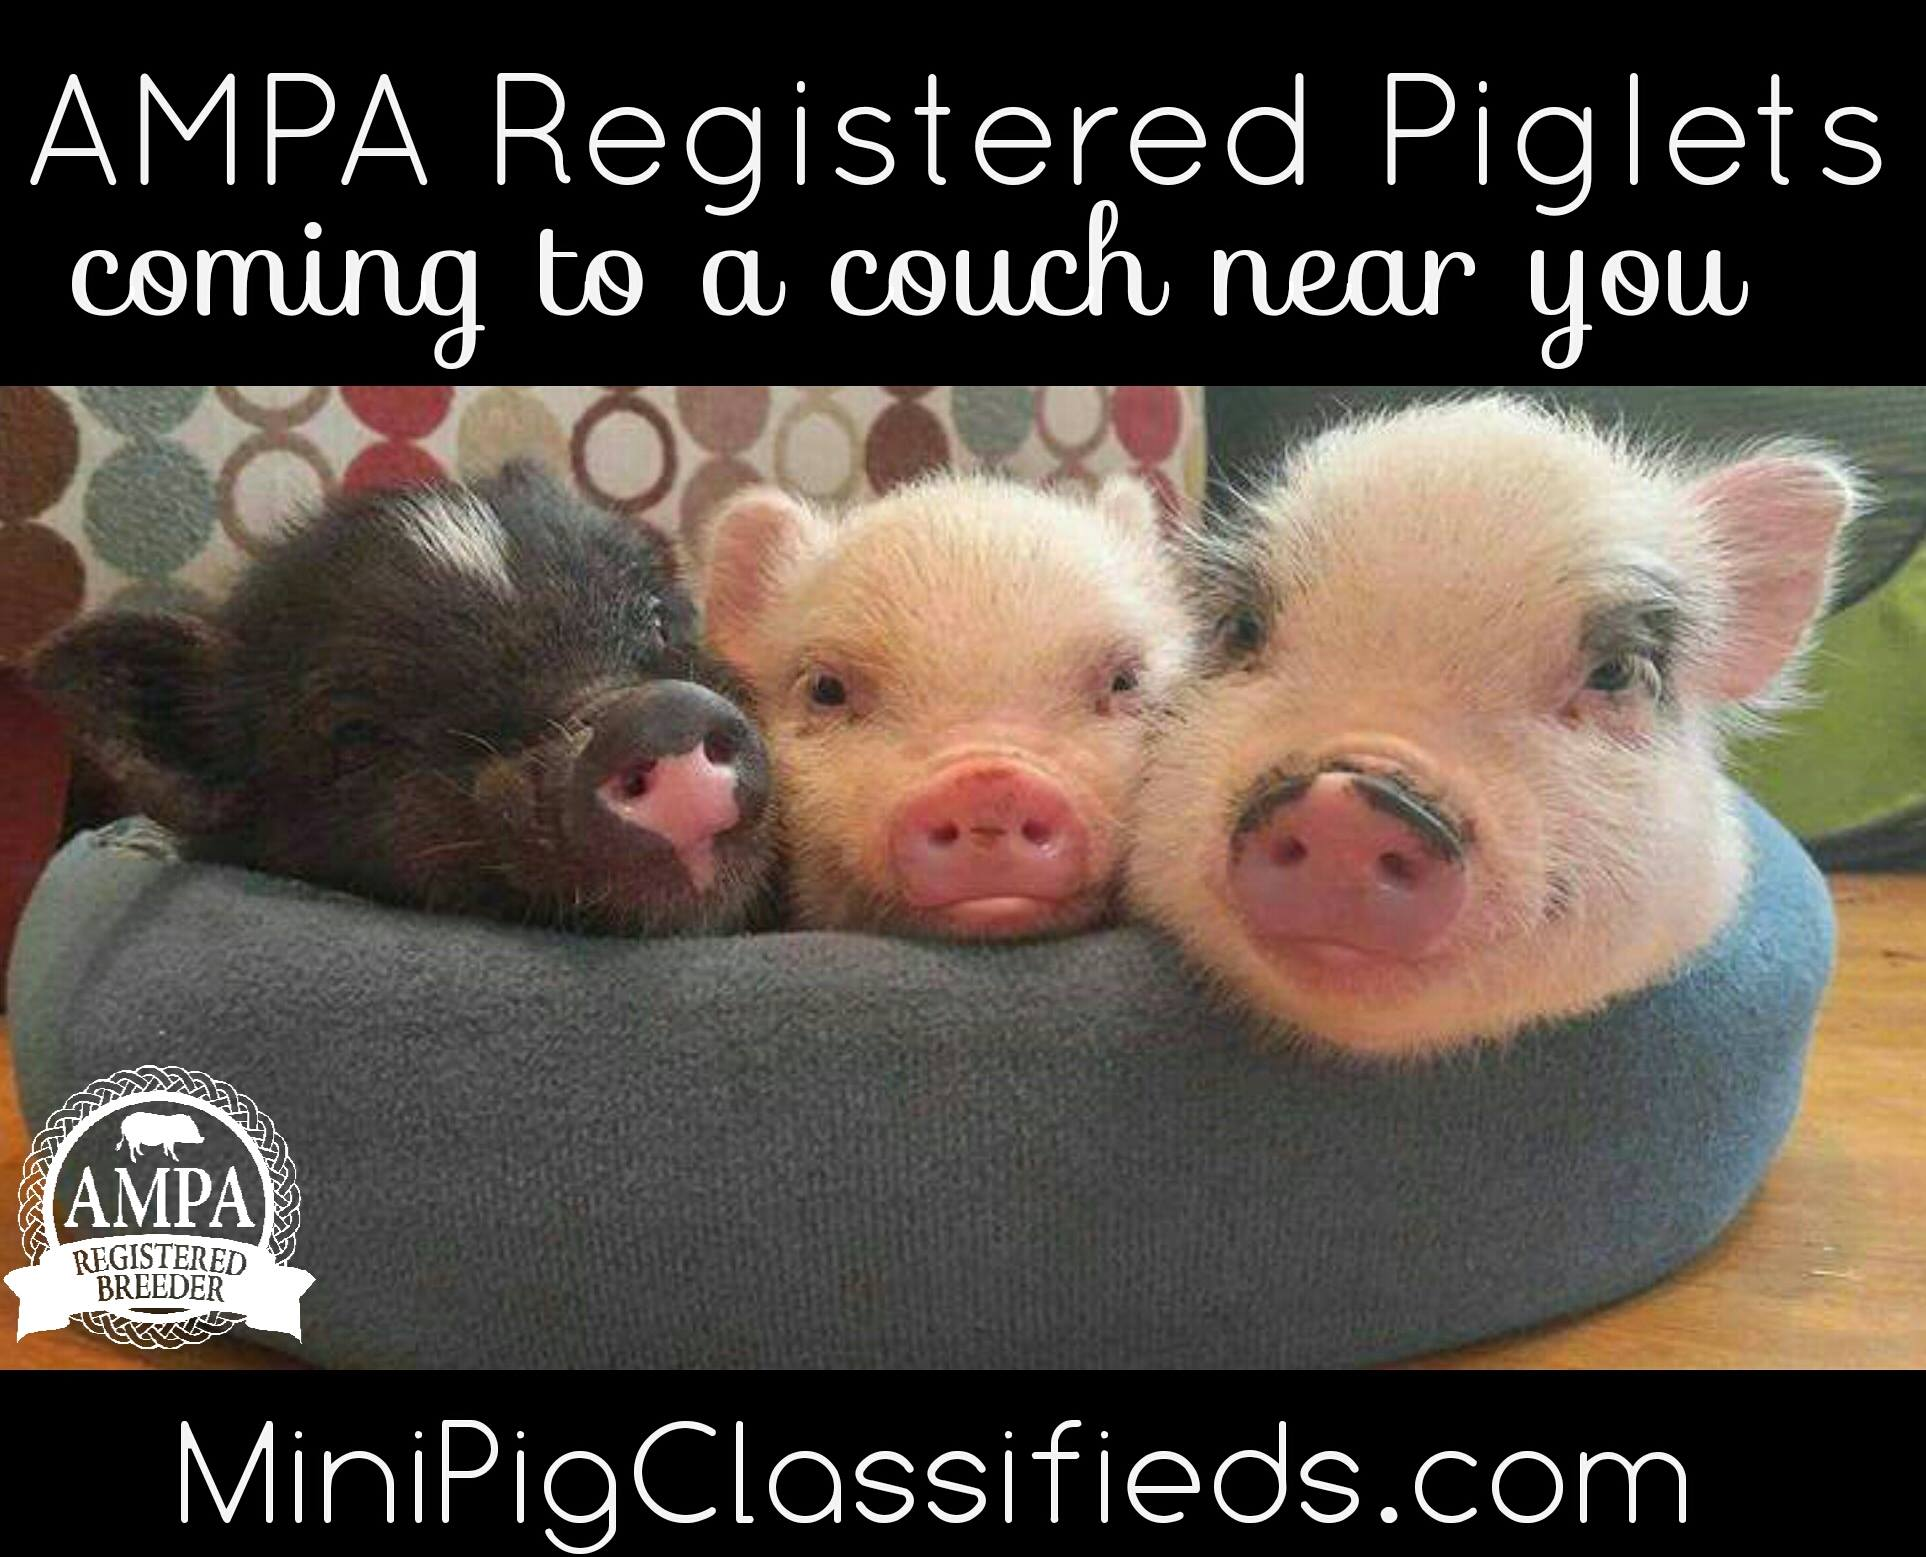 registered piglets